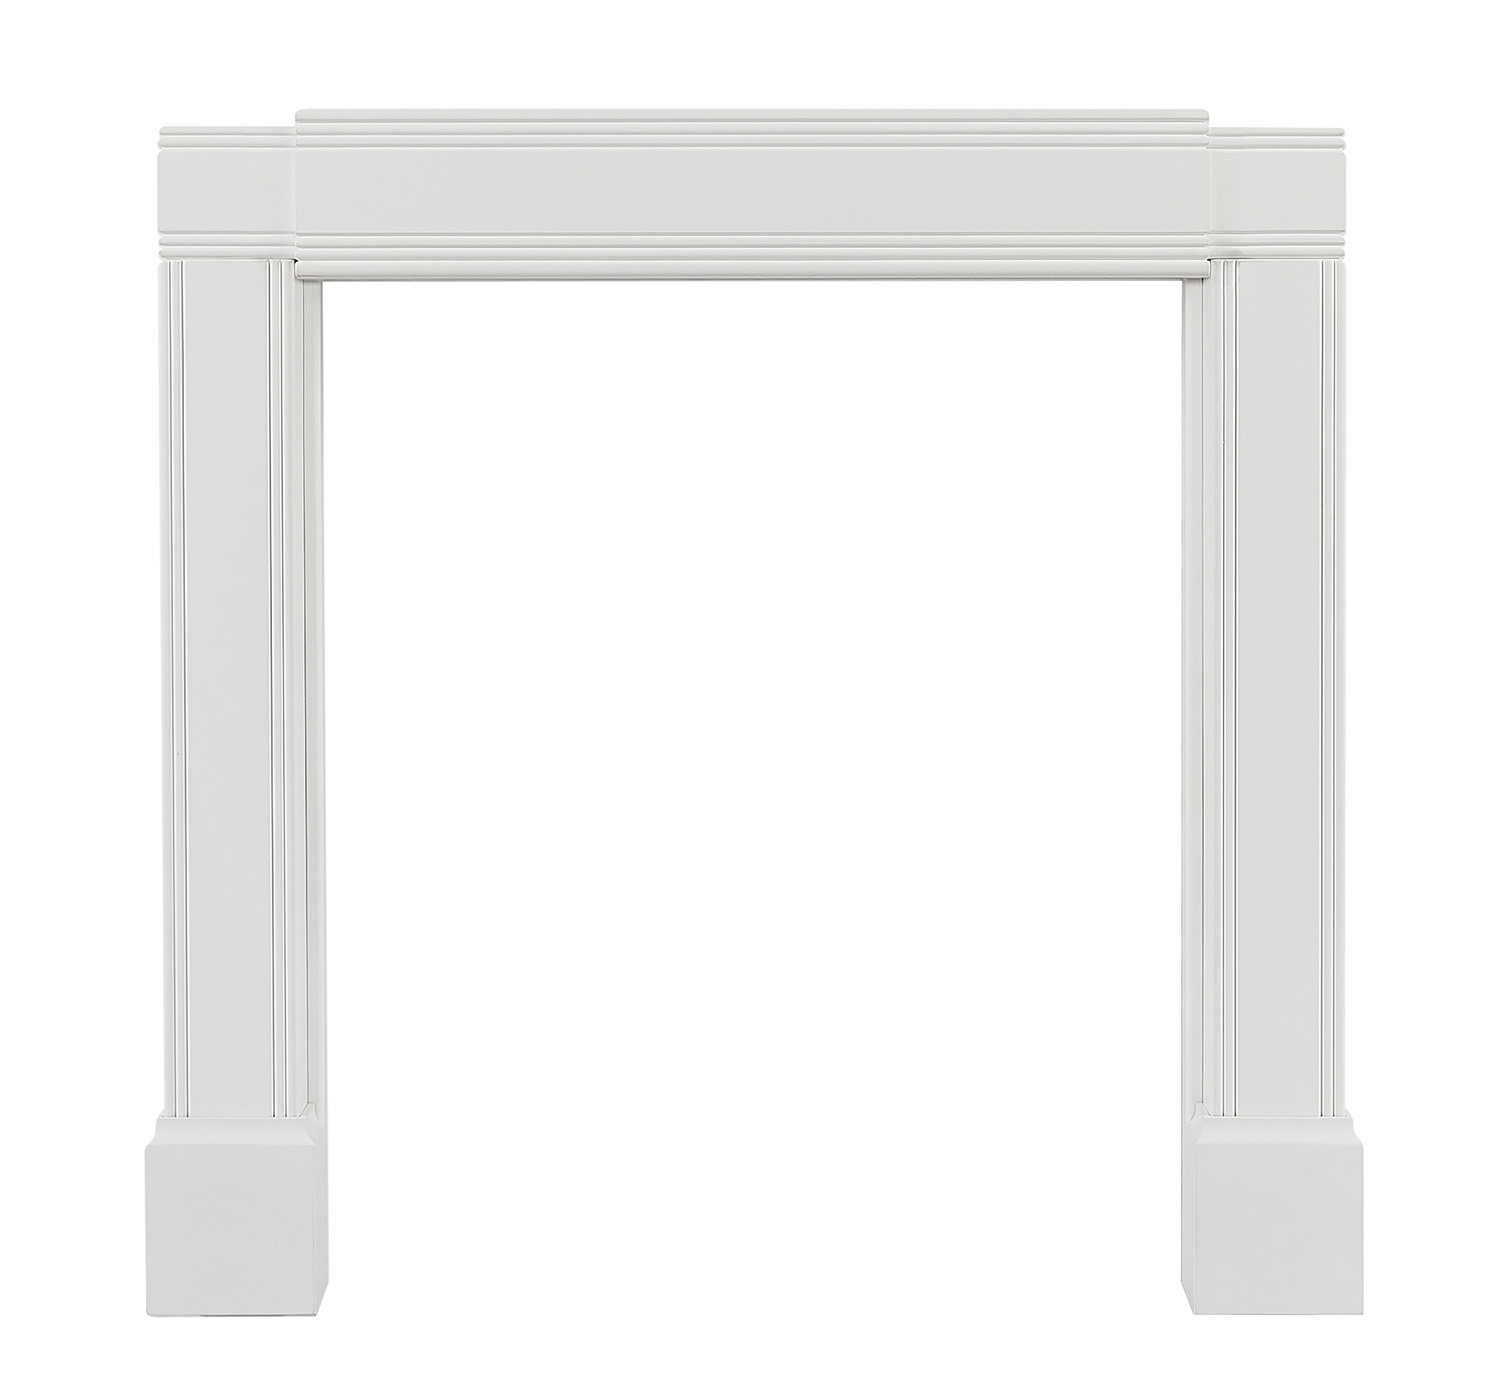 pearl mantels expandable emory surround front closed